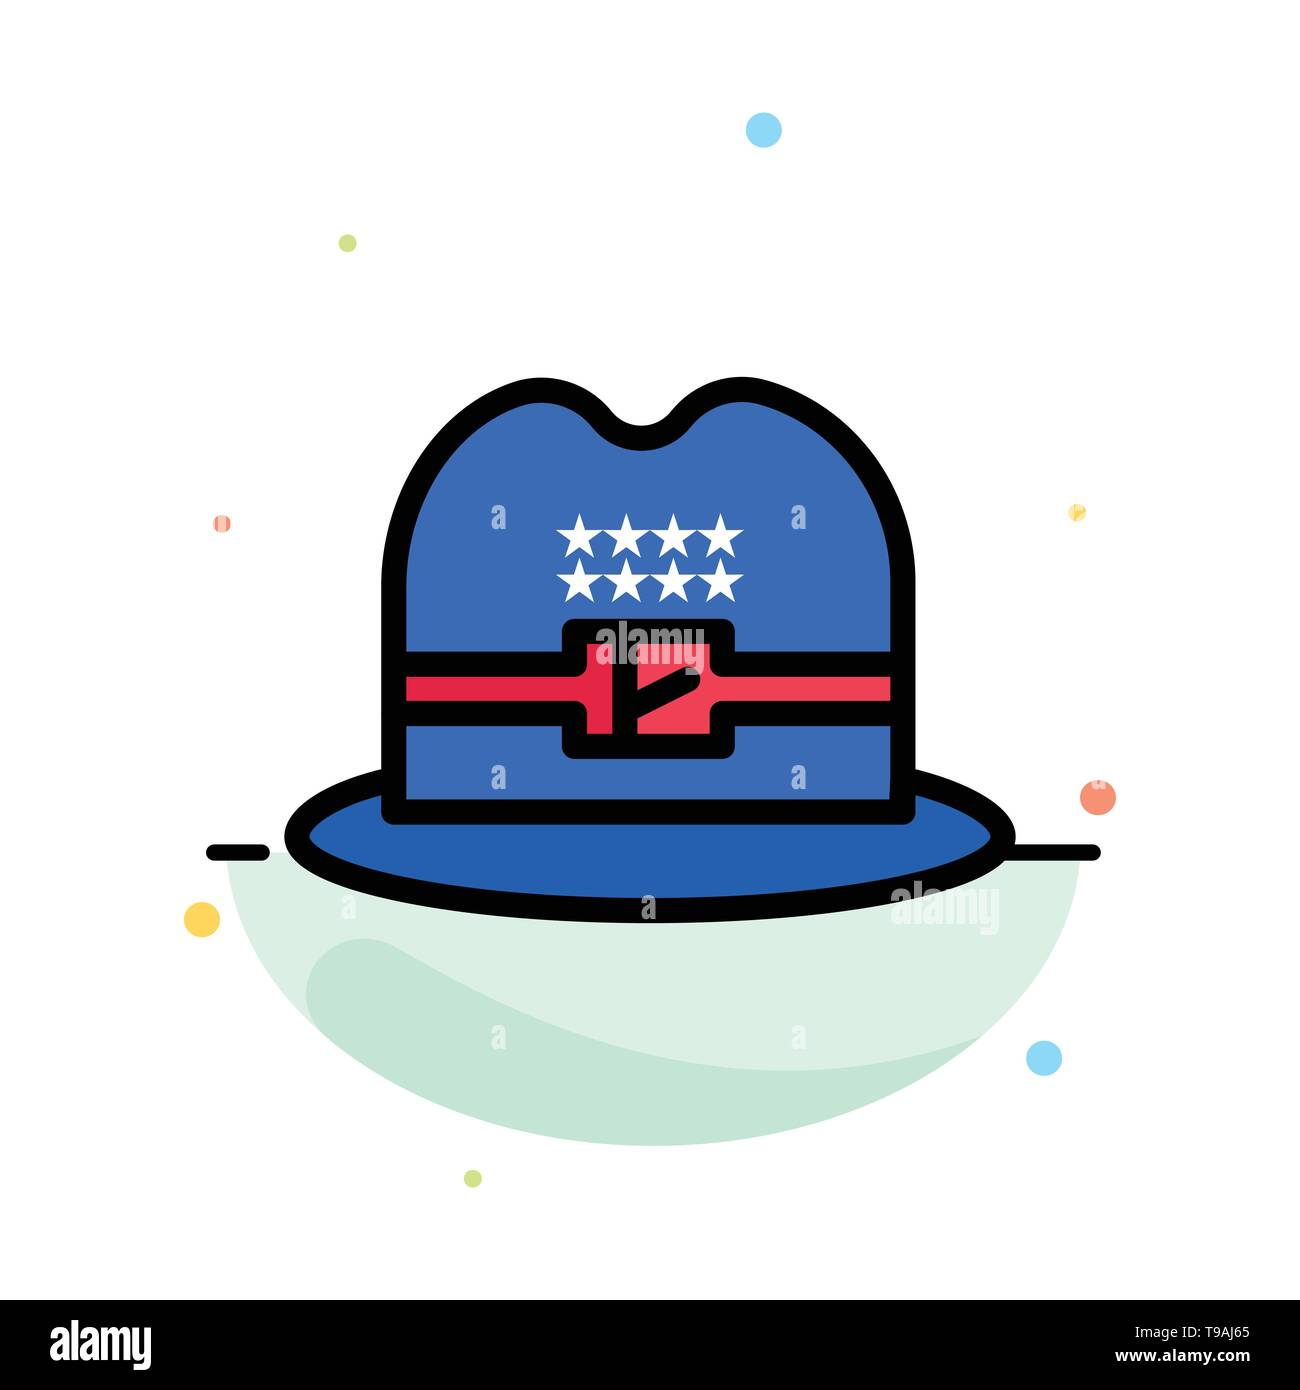 Hat, Cap, American Abstract Flat Color Icon Template - Stock Image